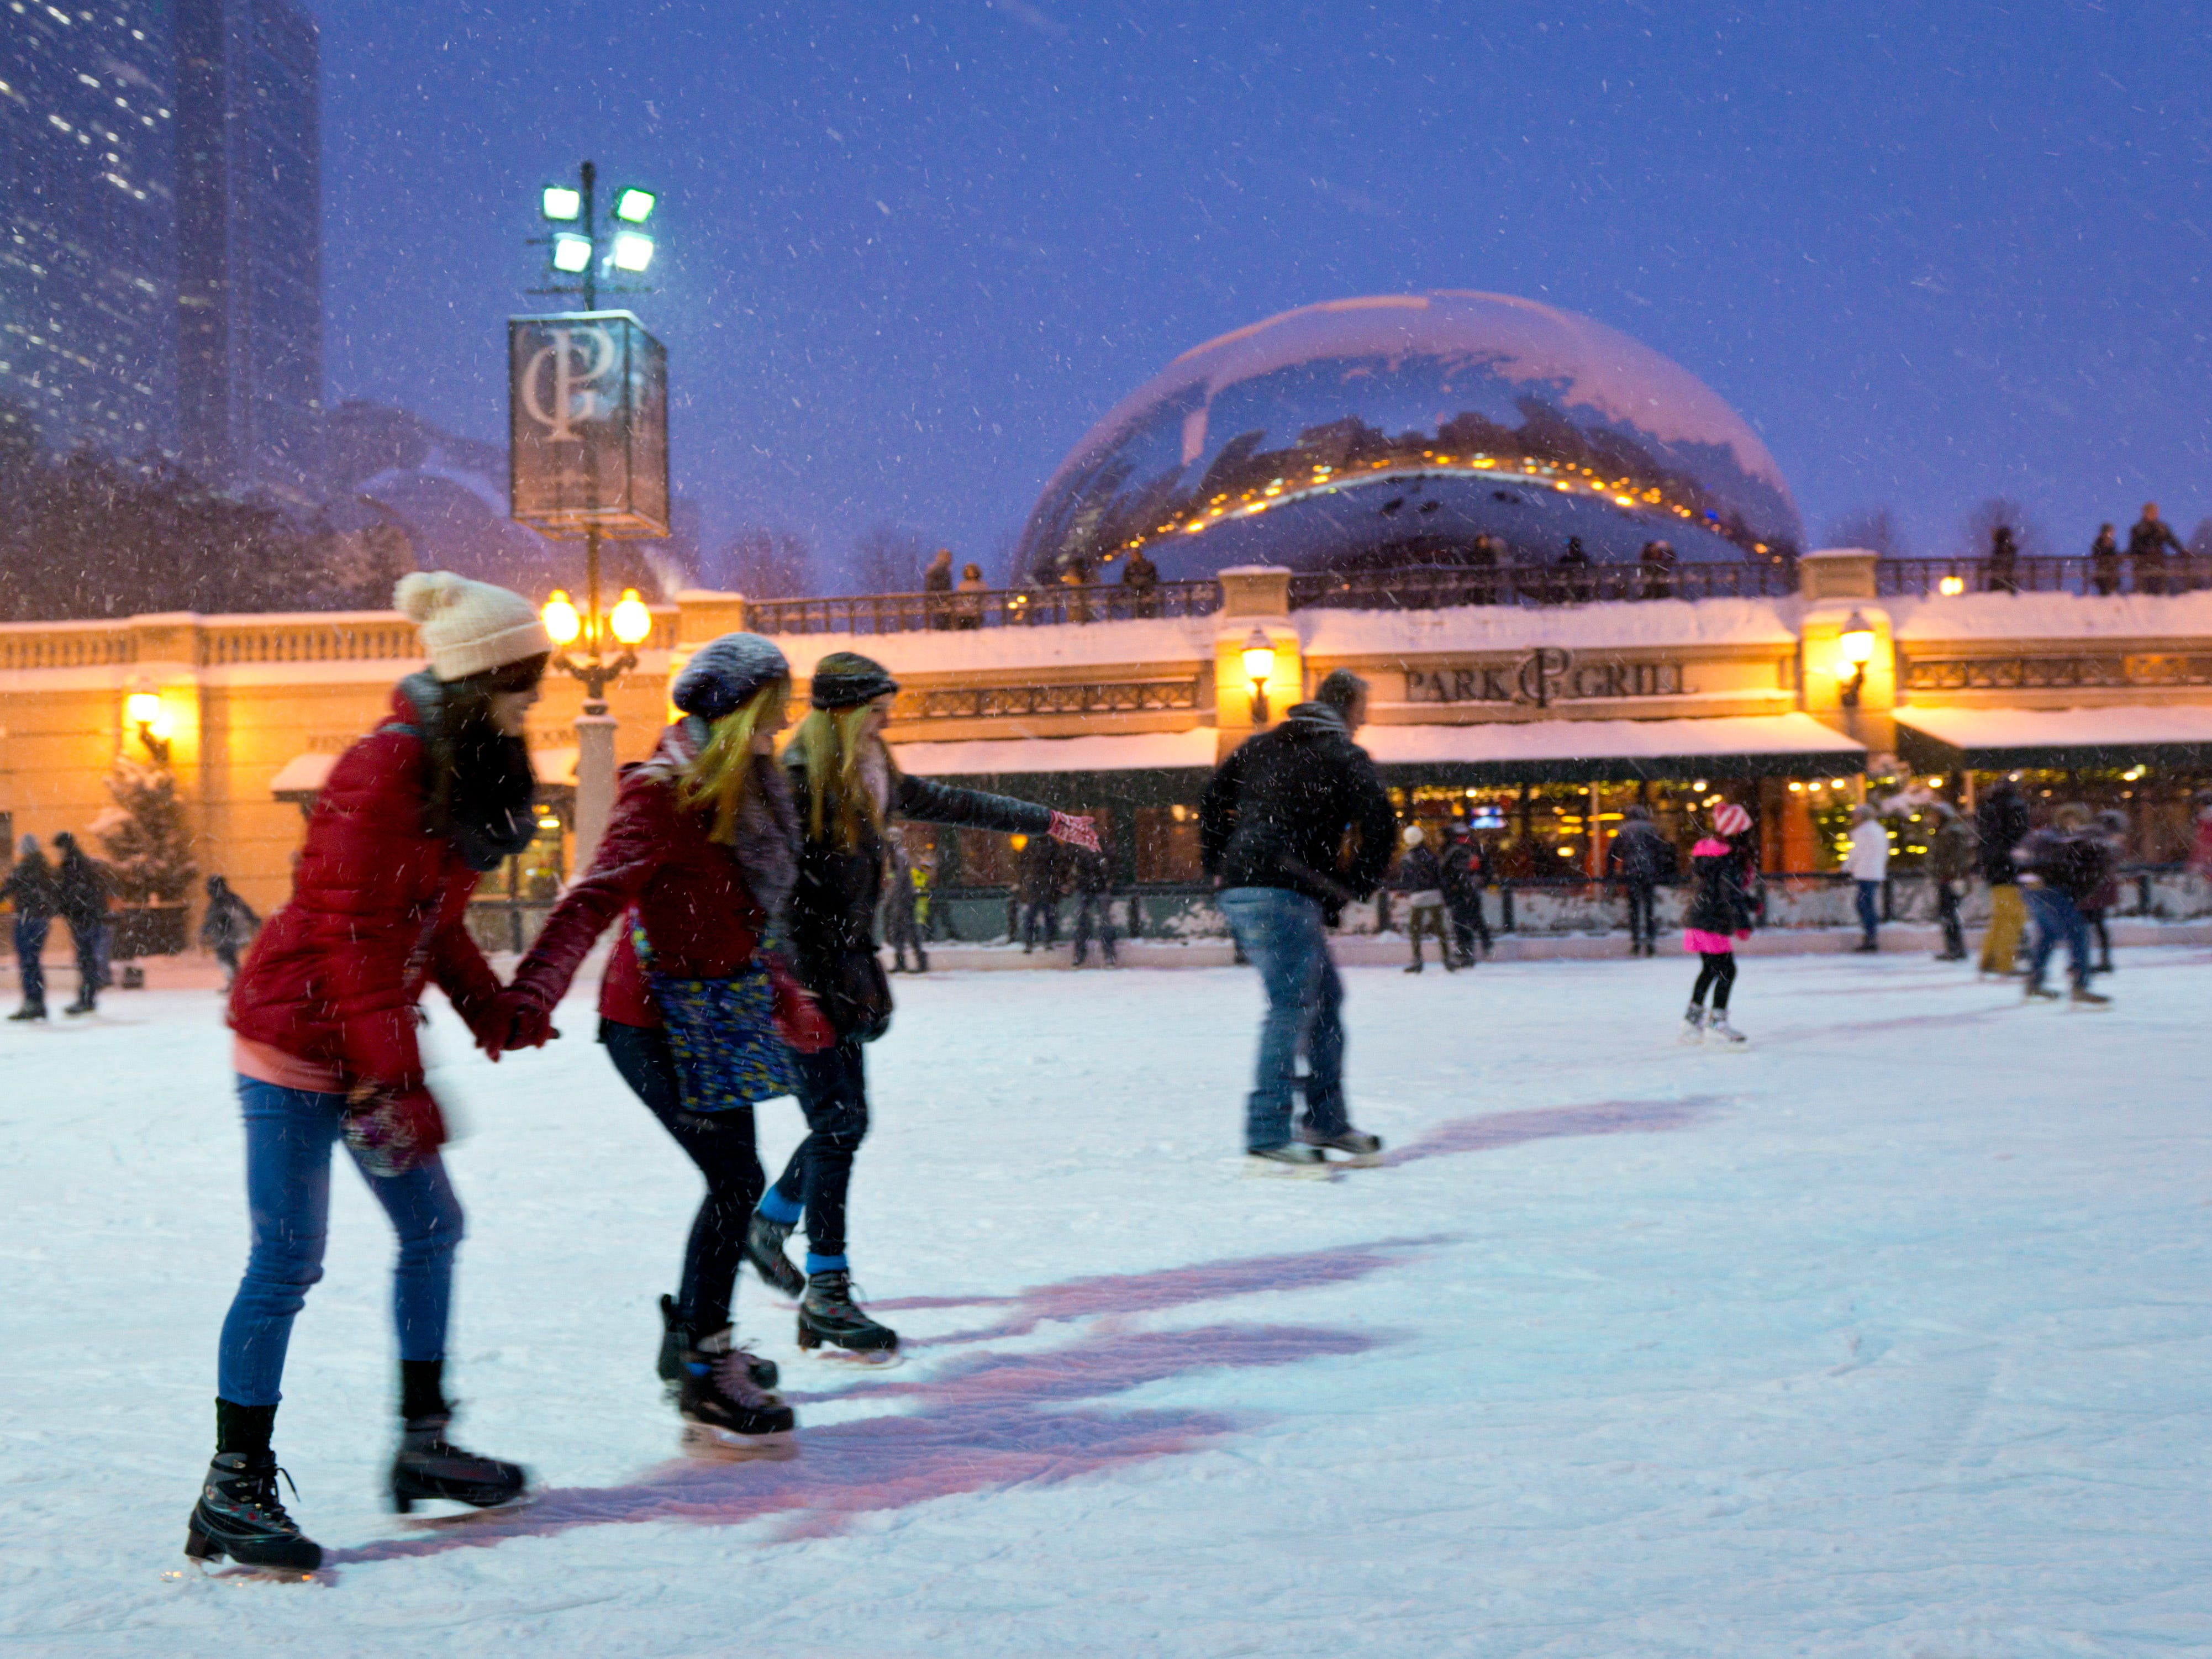 If you're looking for a cold getaway, head to Chicago. It's2018's best winter holiday vacation destination for cold-weather lovers, according to aWalletHubstudy.Experts compared130 of the most populated U.S. metropolitan areas againstsix different factors to determine the ranking: travel costs and hassles, cost in destinations, attractions, weather, safety and activities. One of the Chicago activities is skating at the free McCormick Tribune Ice Rink. Check out the rest of the top 32 winter vacation destinations.